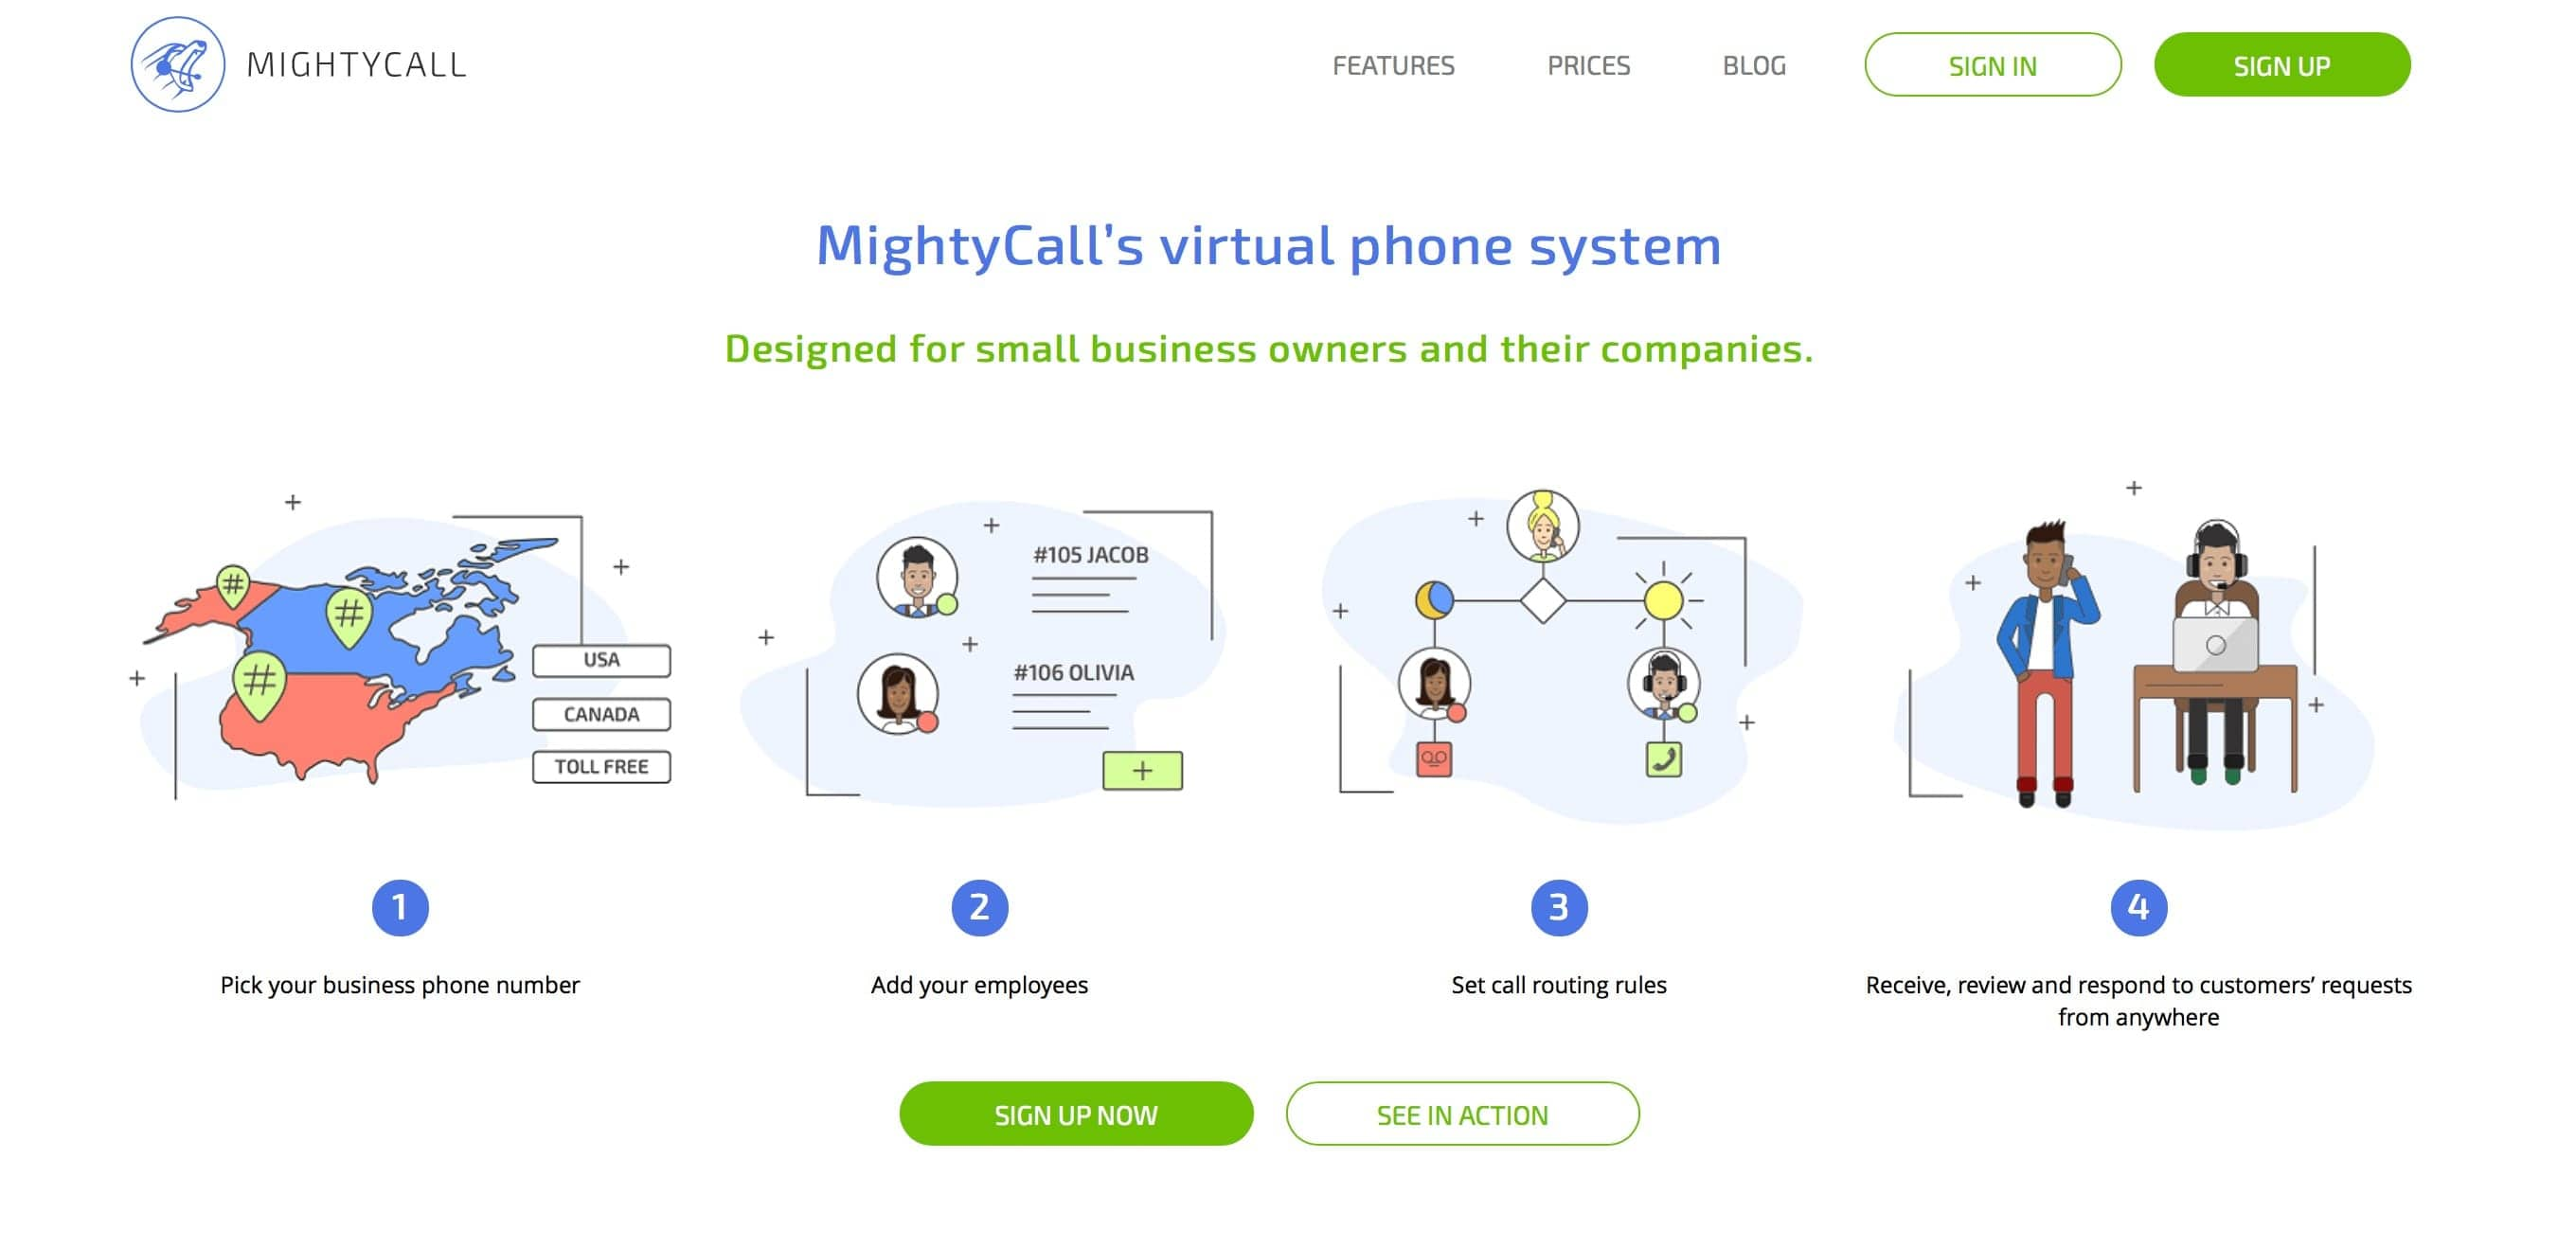 MightyCall's virtual phone system